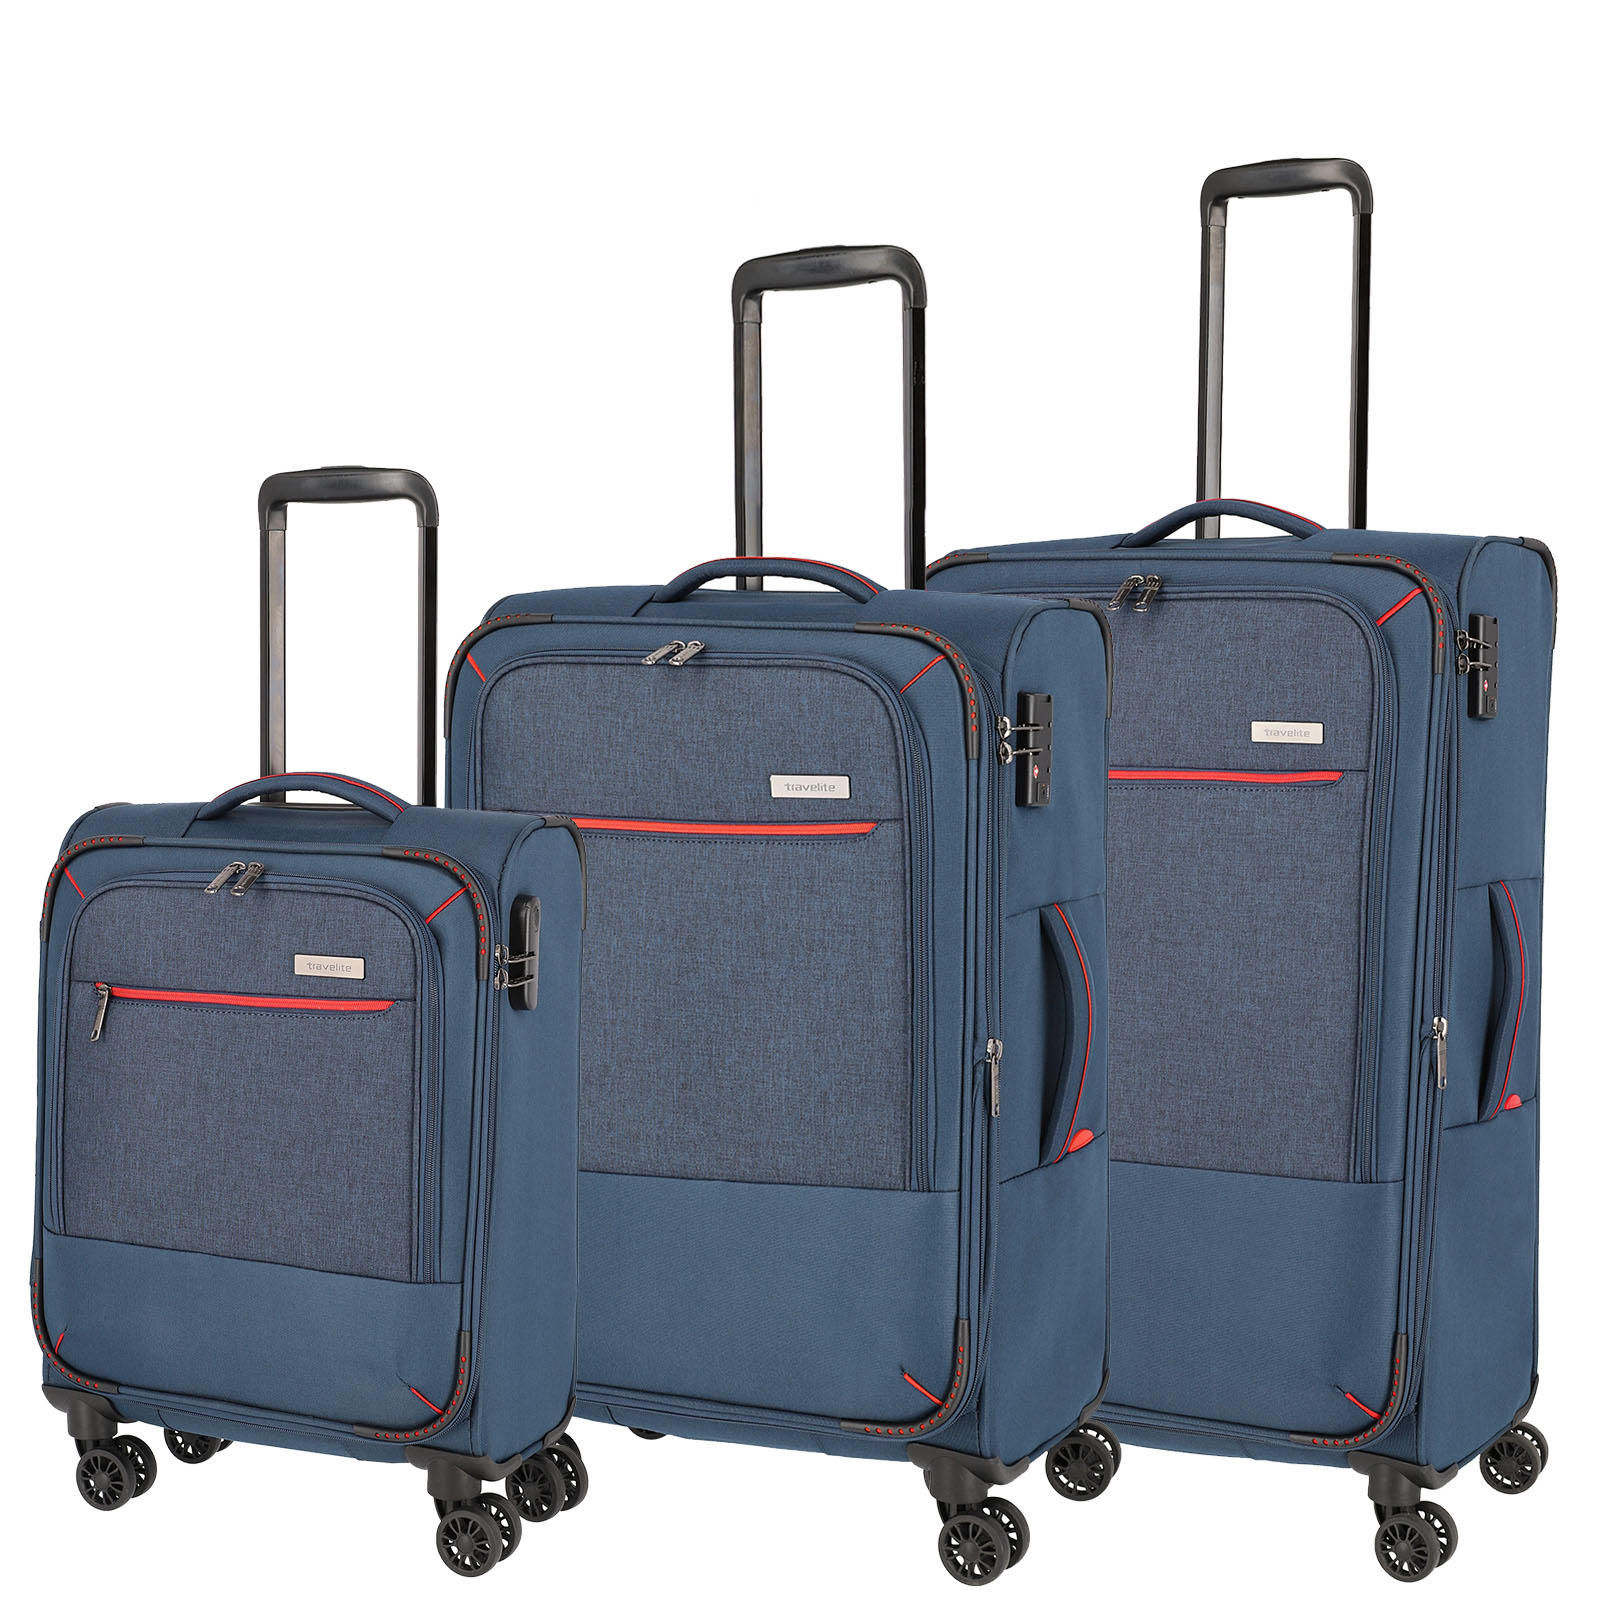 travelite-arona-3-tlg-trolley-set-marine